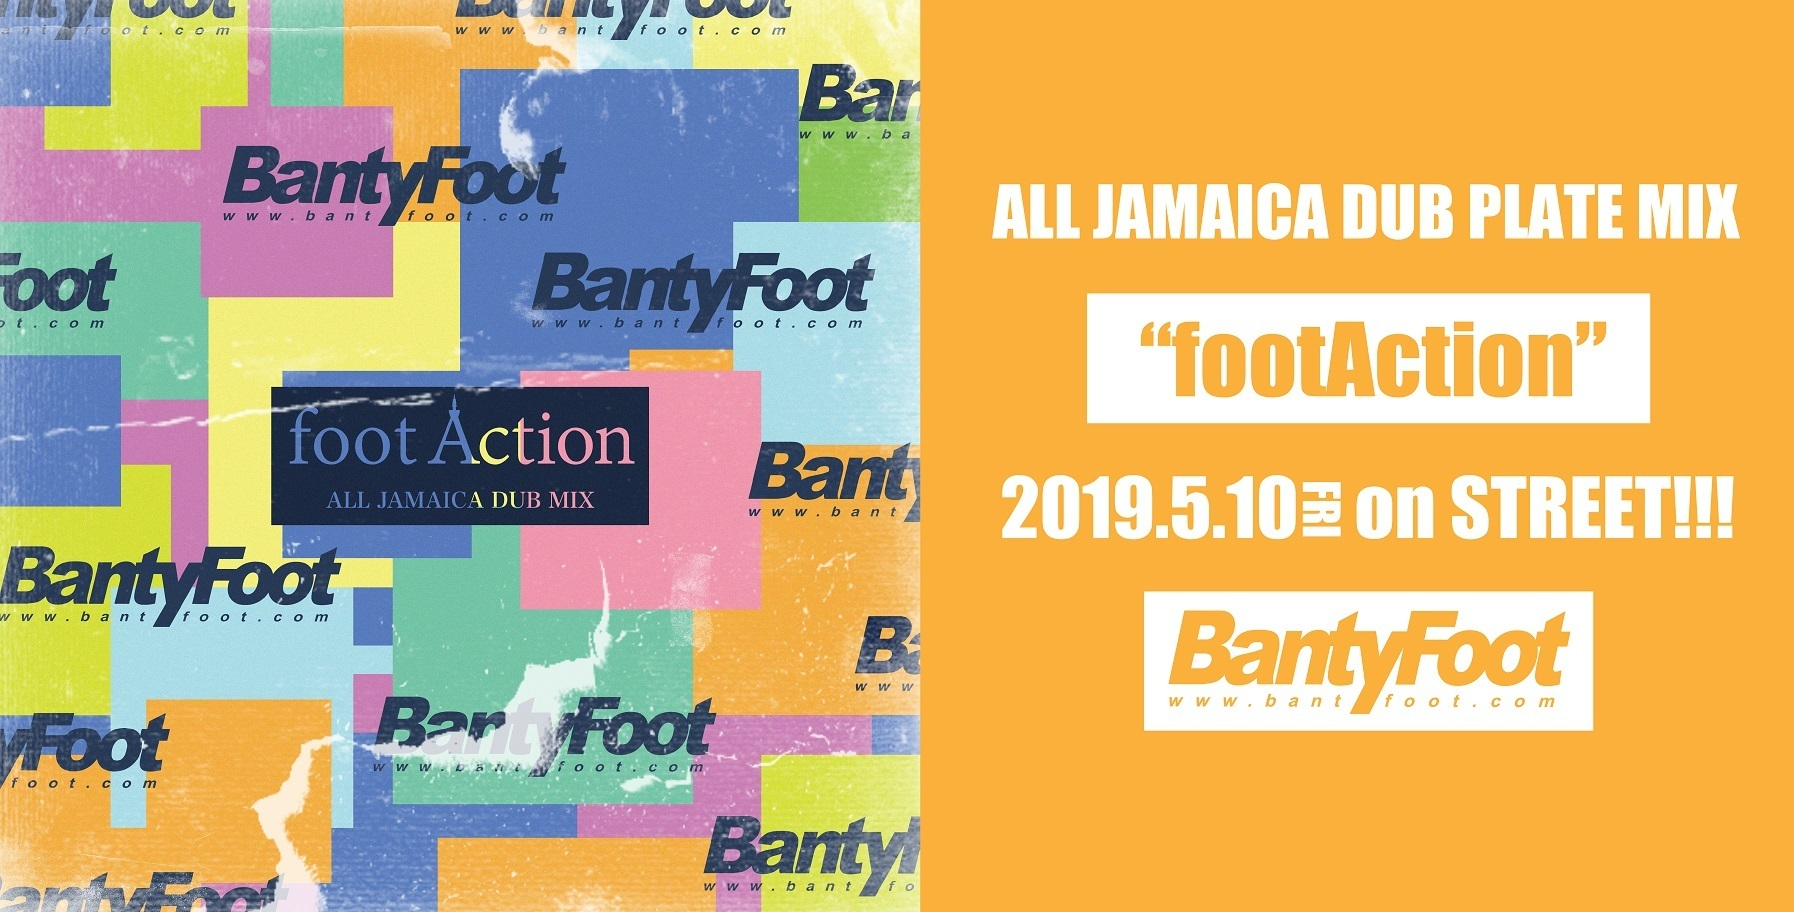 Footaction%e3%83%90%e3%83%8a%e3%83%bc_h1794w912